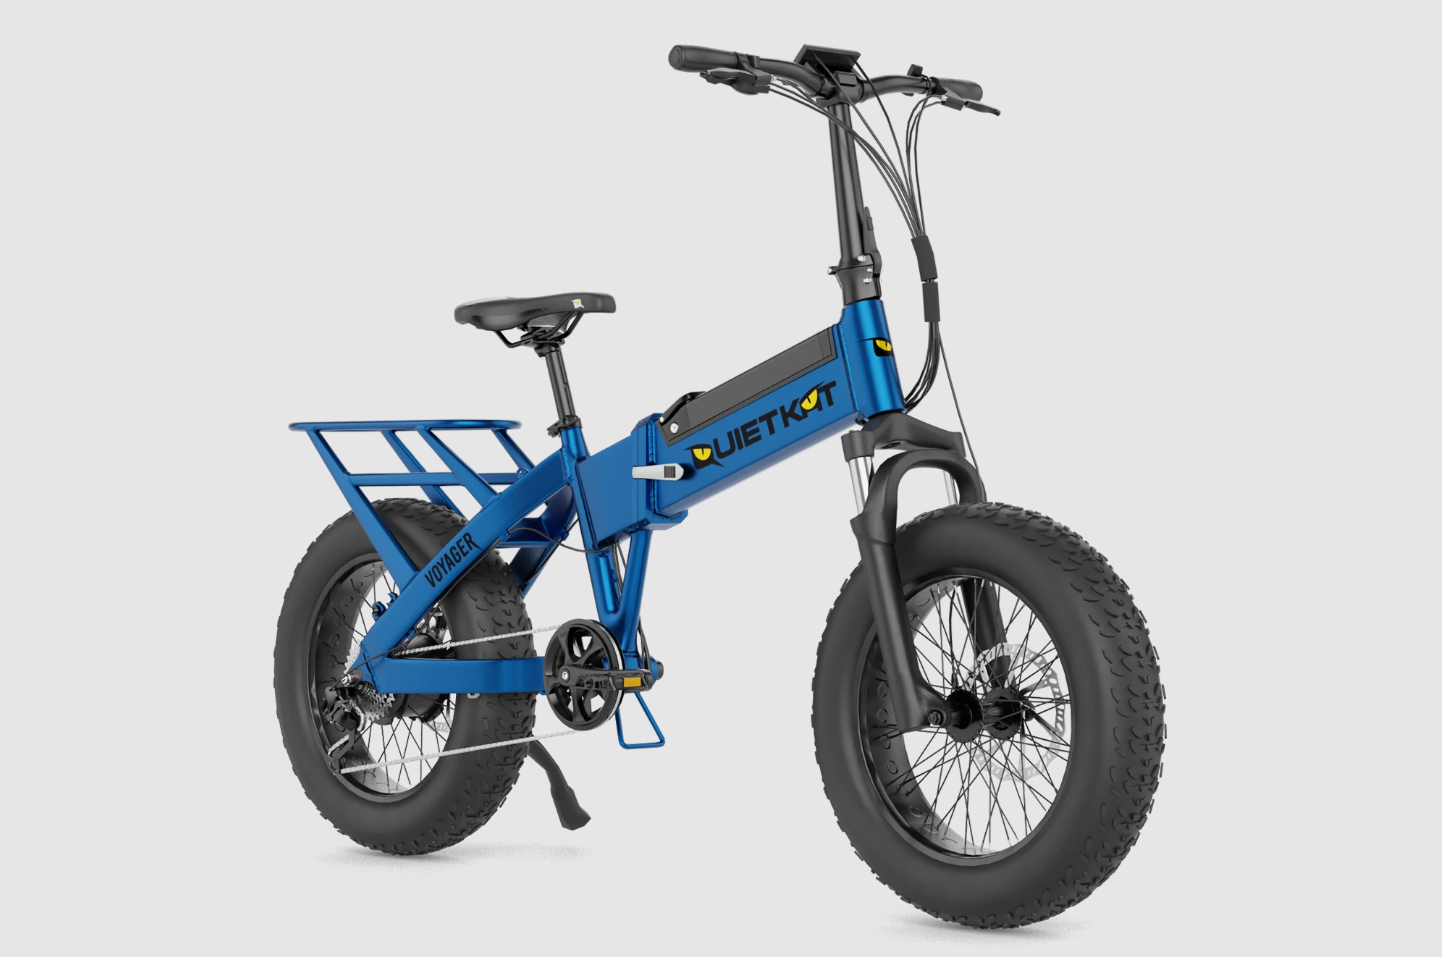 2021 QuietKat Voyager Folding Electric Bike